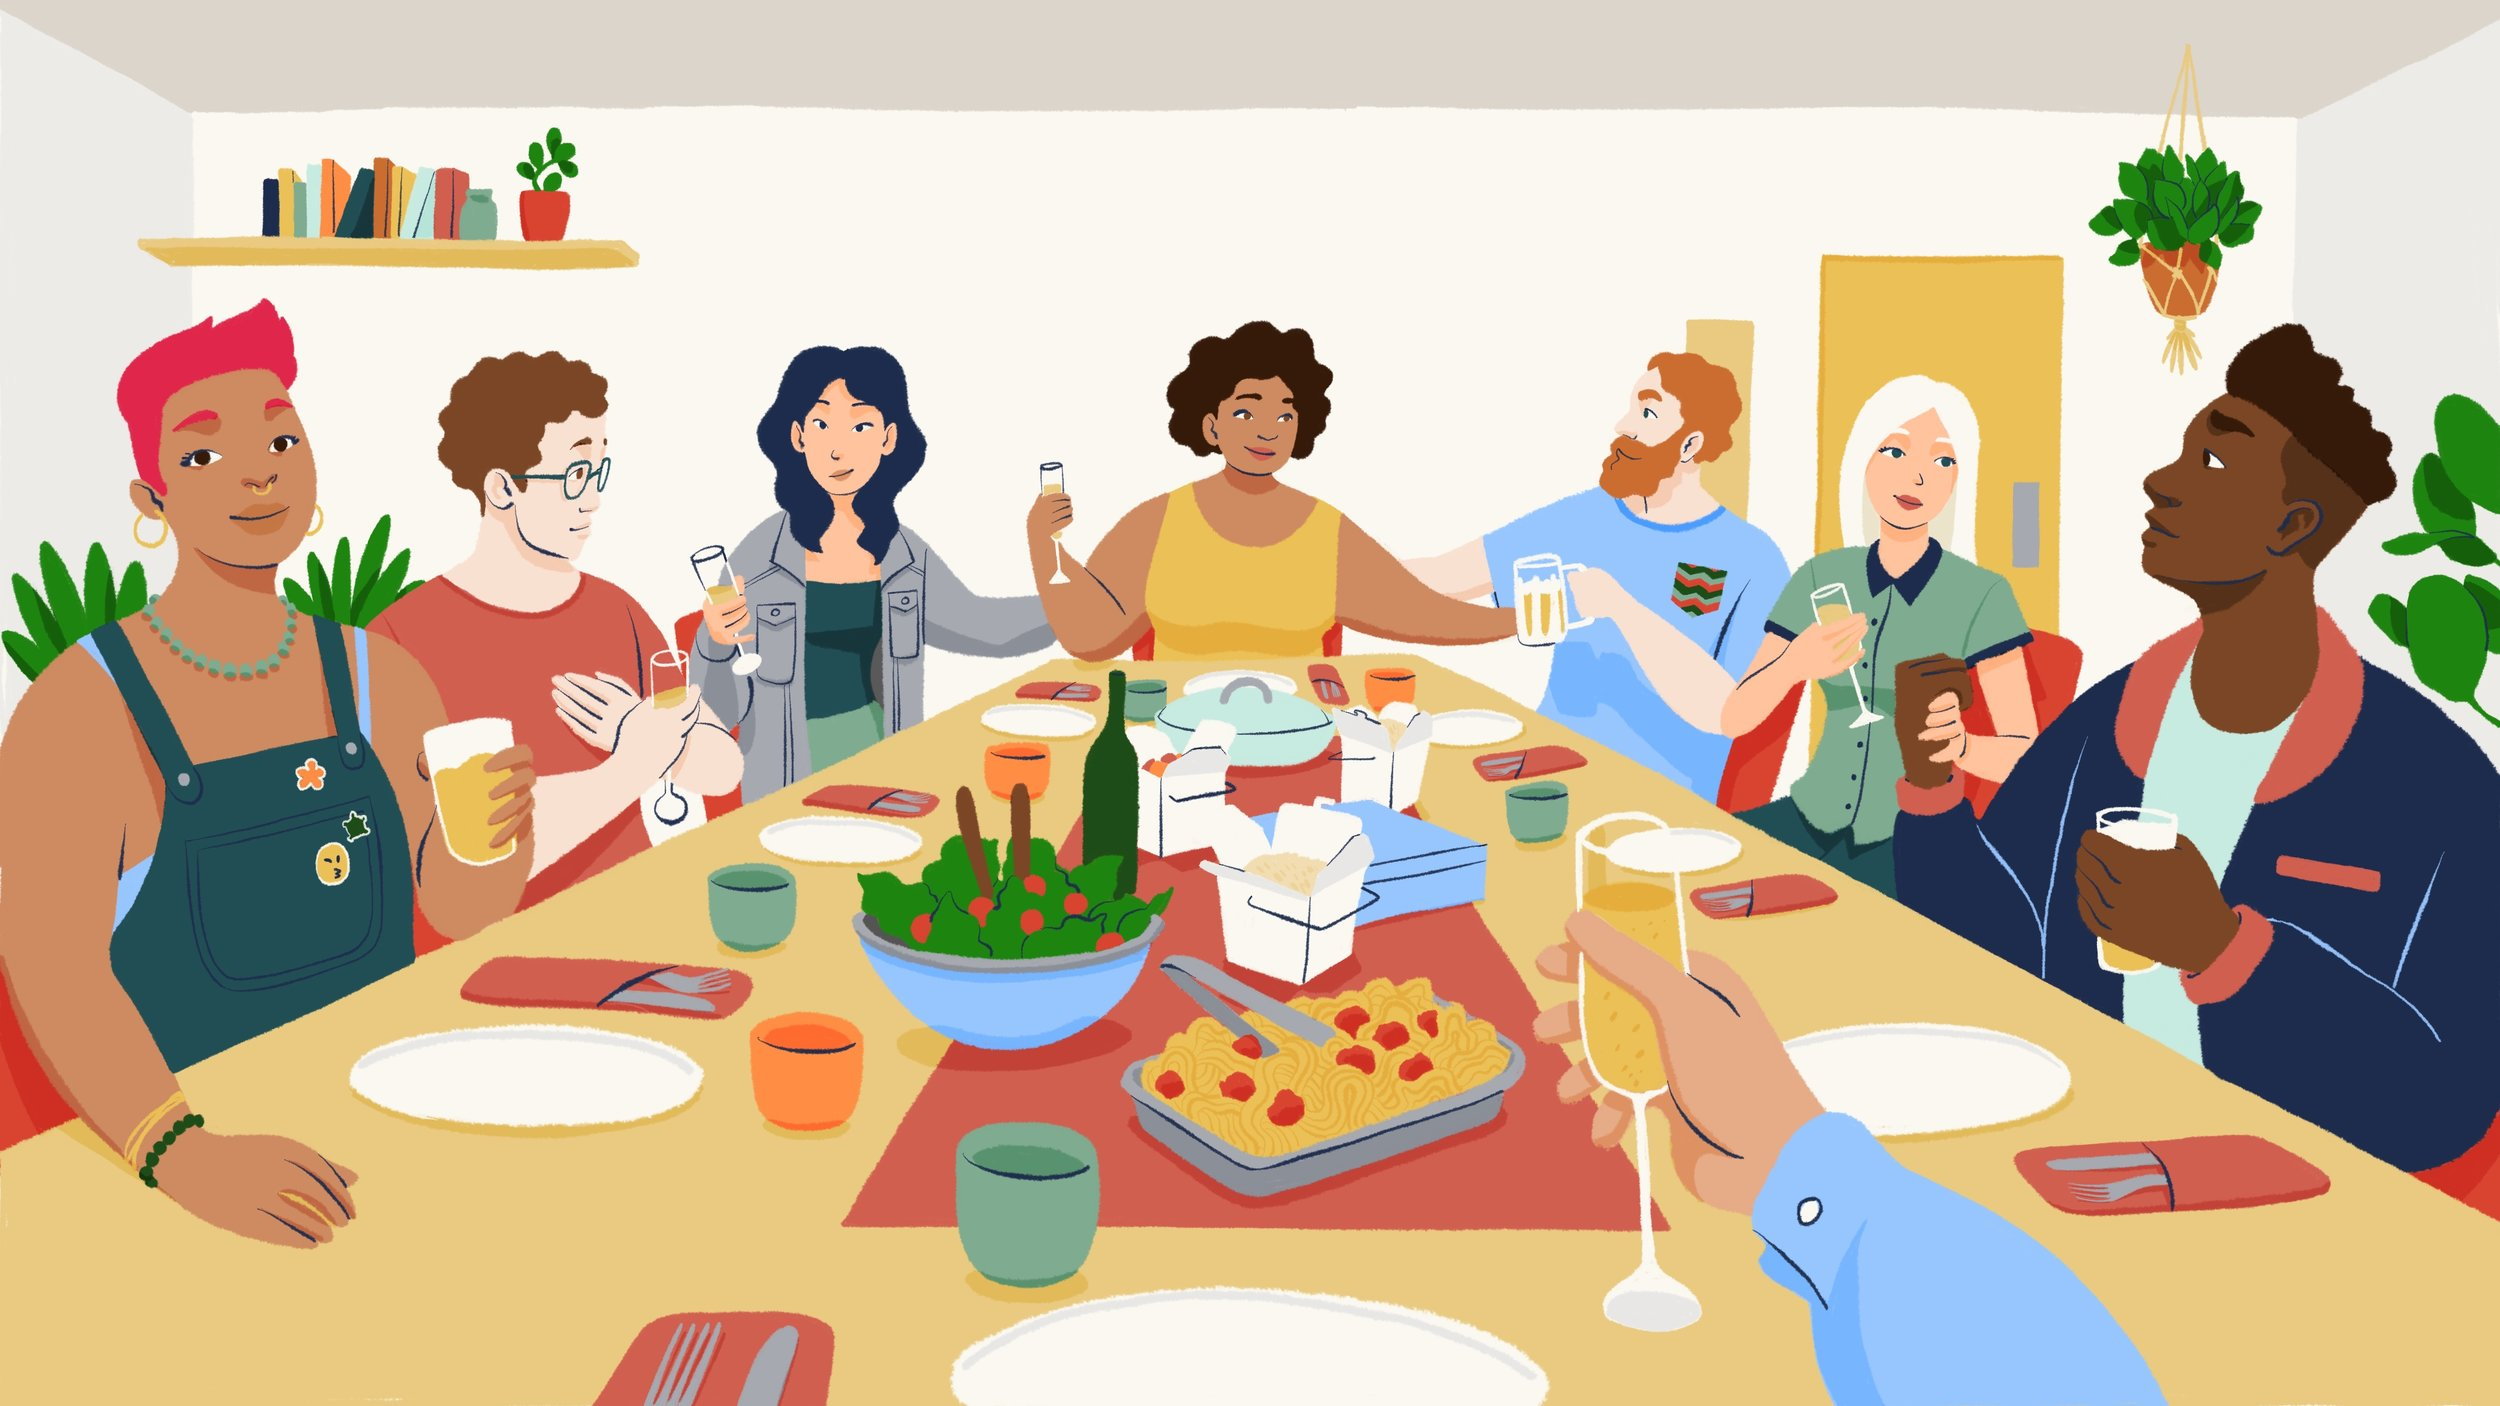 What if each of us could turn the source of our deepest isolation into healing and community support? - We're TDP Labs, and we're fighting the crisis of isolation by transforming some of our hardest conversations and most isolating experiences into openings for candid conversation, collective care, and forward movement using the age old practice of breaking bread.